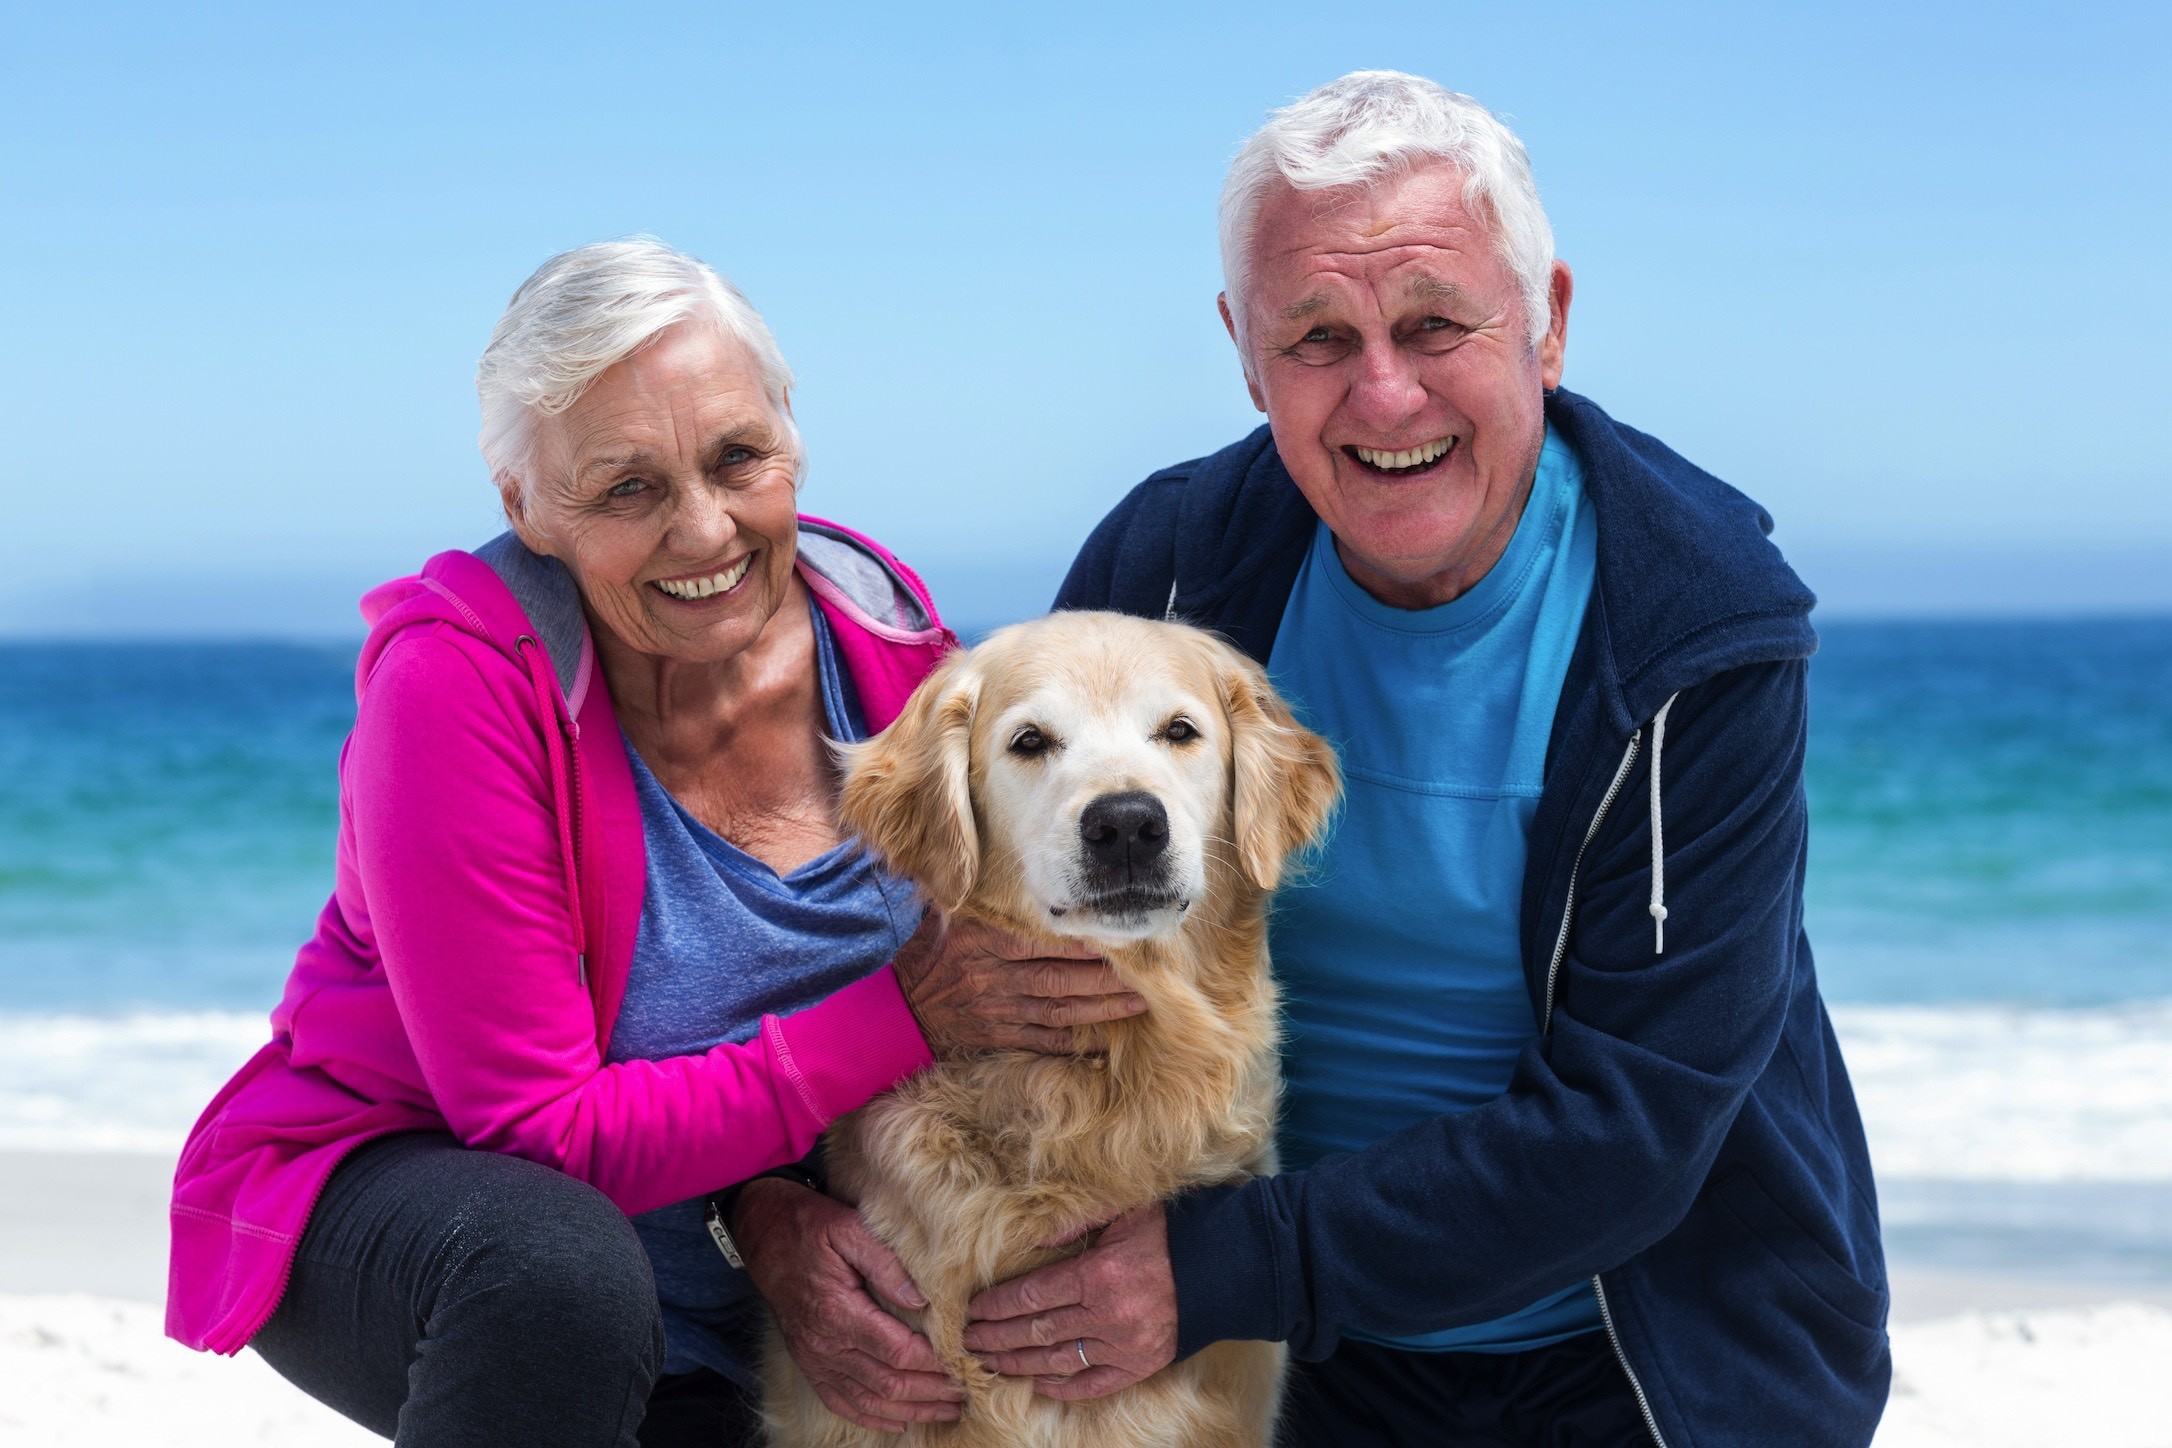 Older Couple on Beach with Dog